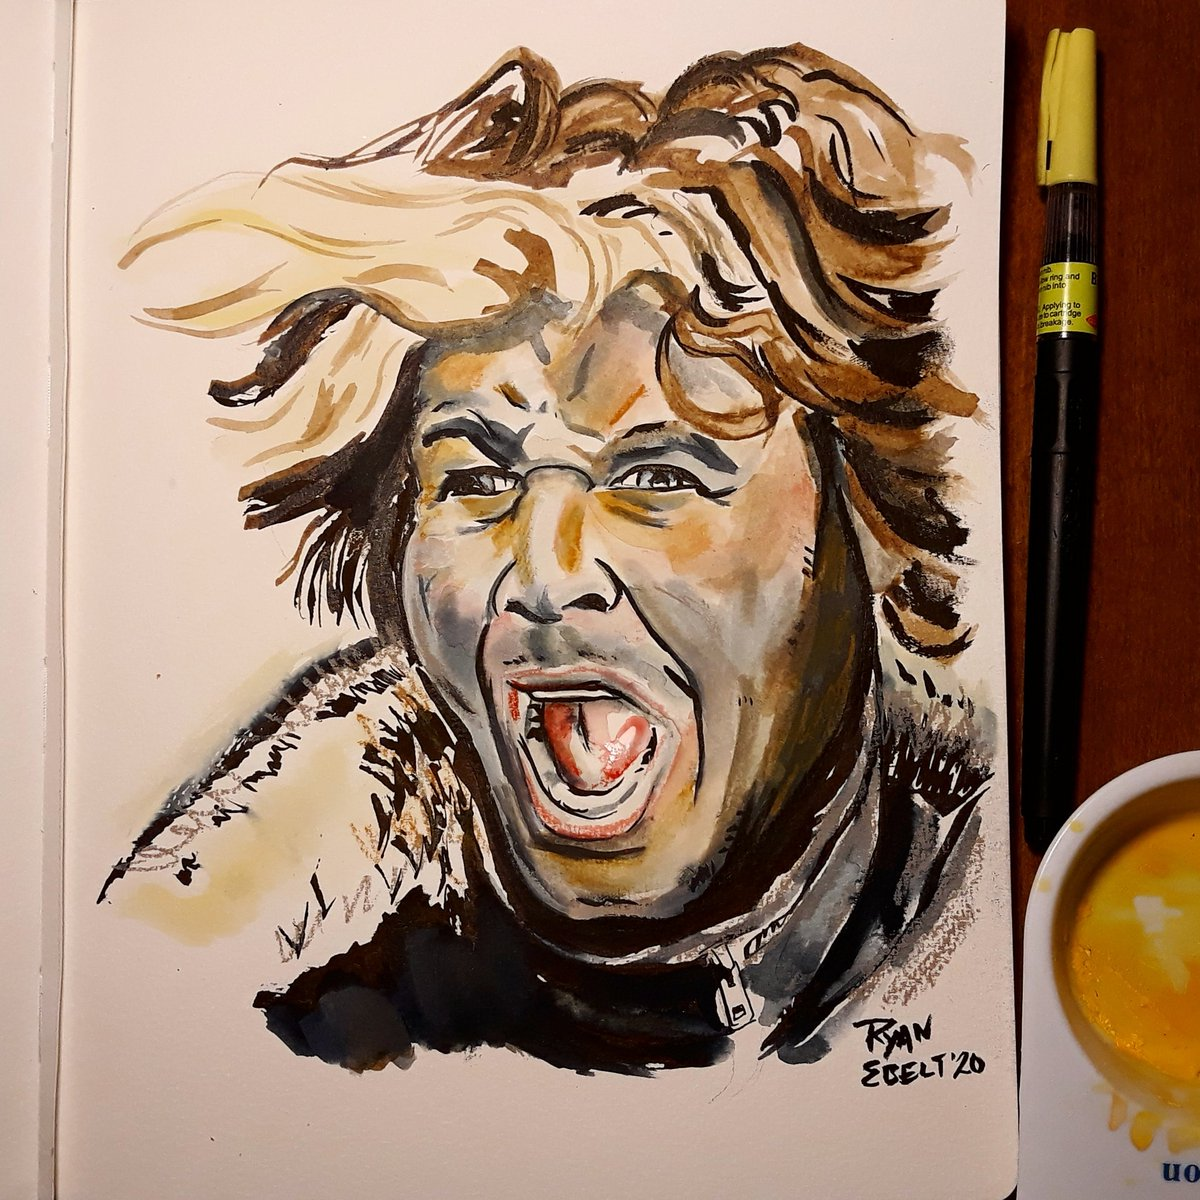 Remember him when you look into the night skies! Quick stream tribute to Aussie movie villain great Hugh Keays-Byrne! RIP! #art #drawing #ink #watercolor #mixedmedia #portrait #tribute #movies #actor #madmax #hughkeaysbyrne #ryanjebelt